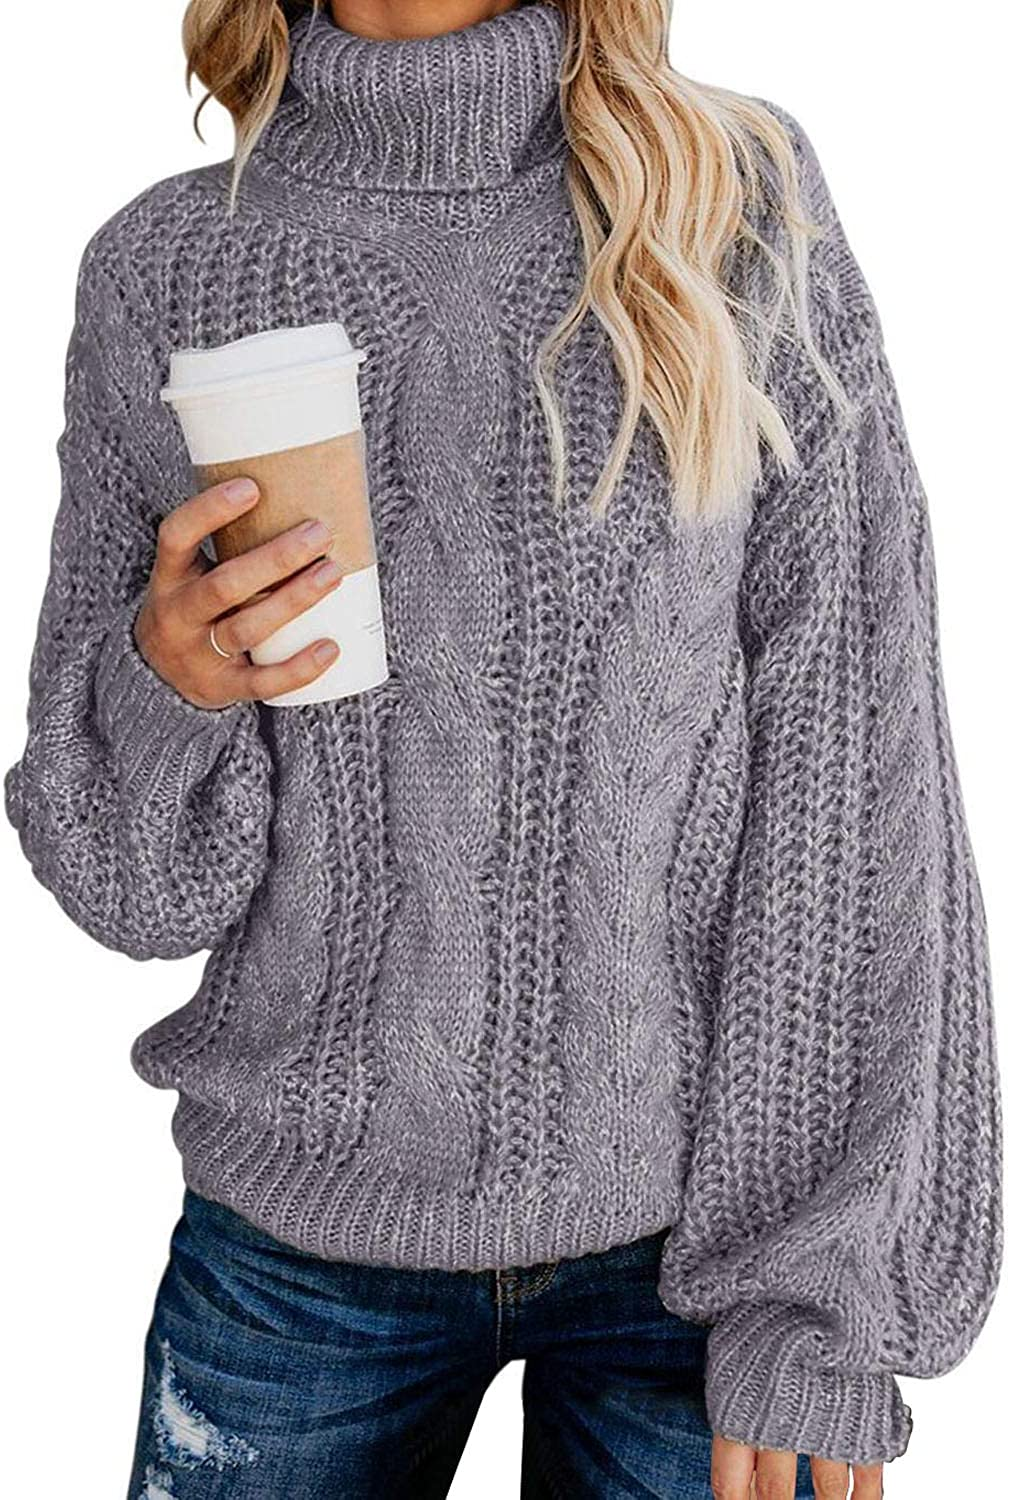 Chase Secret Womens Turtle Cowl Neck Solid Color Soft Comfy Cable Knit Pullover Sweaters S-2XL